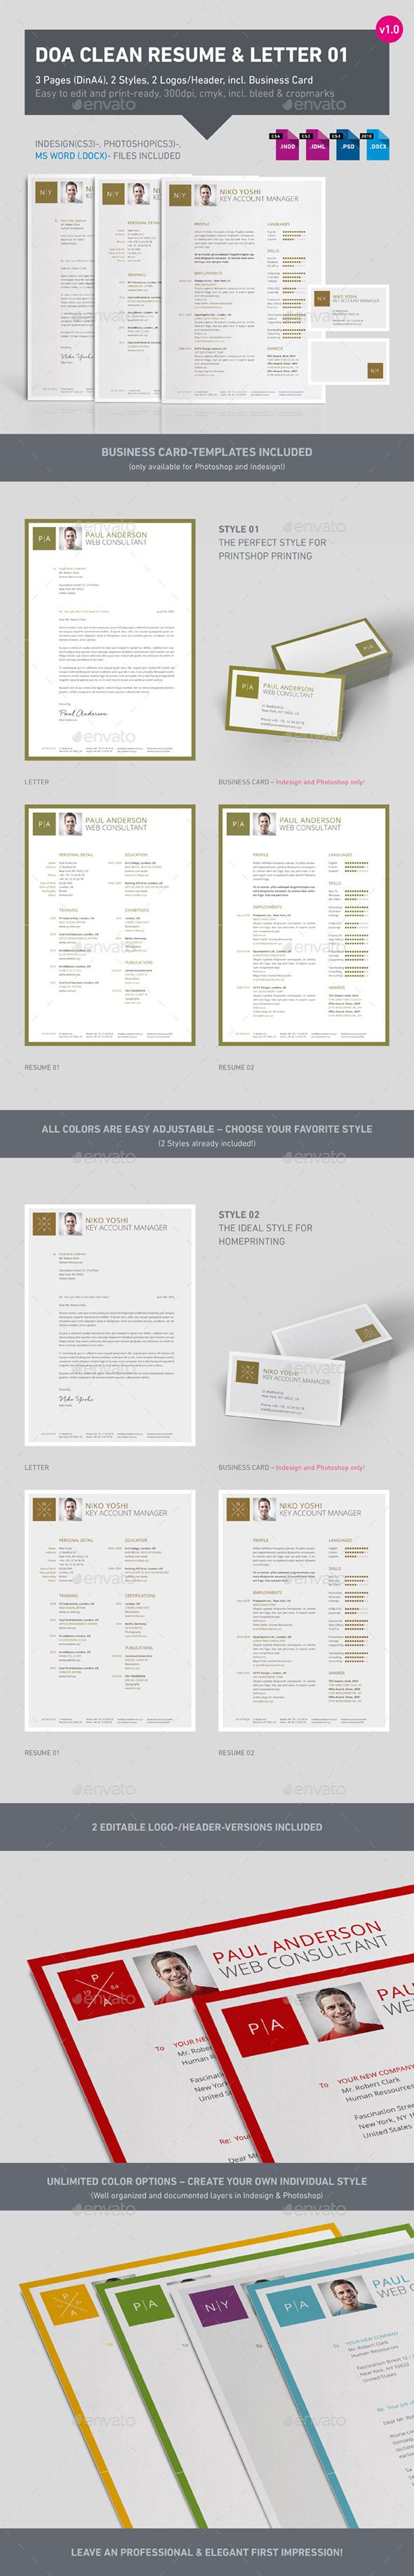 Clean 3 Part Resume 01 Resumes Stationery